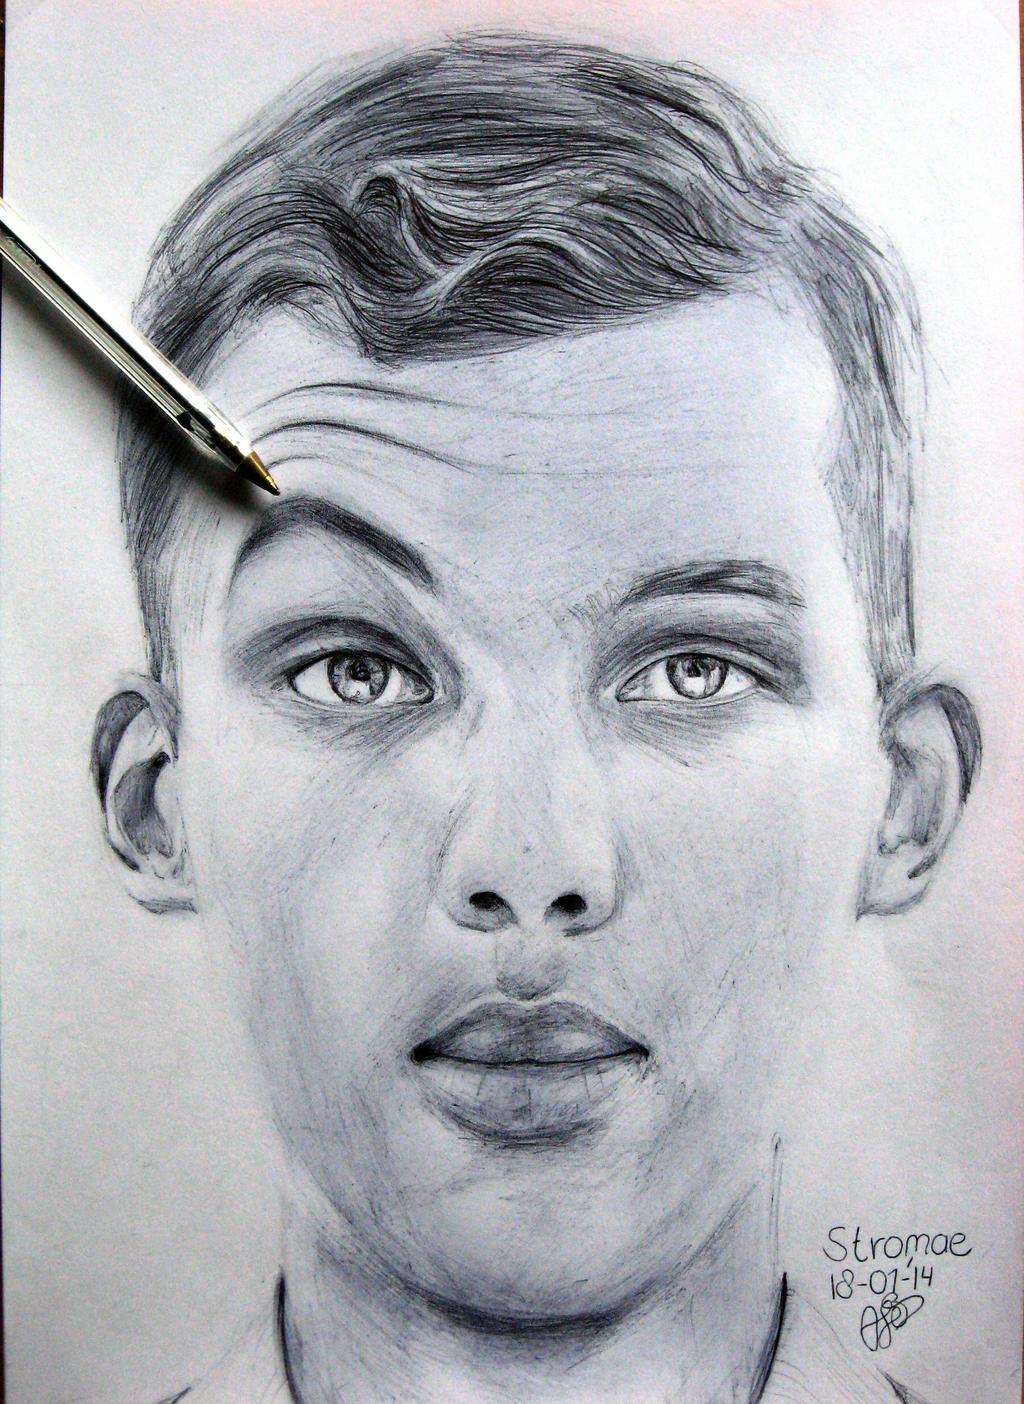 Stromae ballpoint drawing by textmixer on deviantart